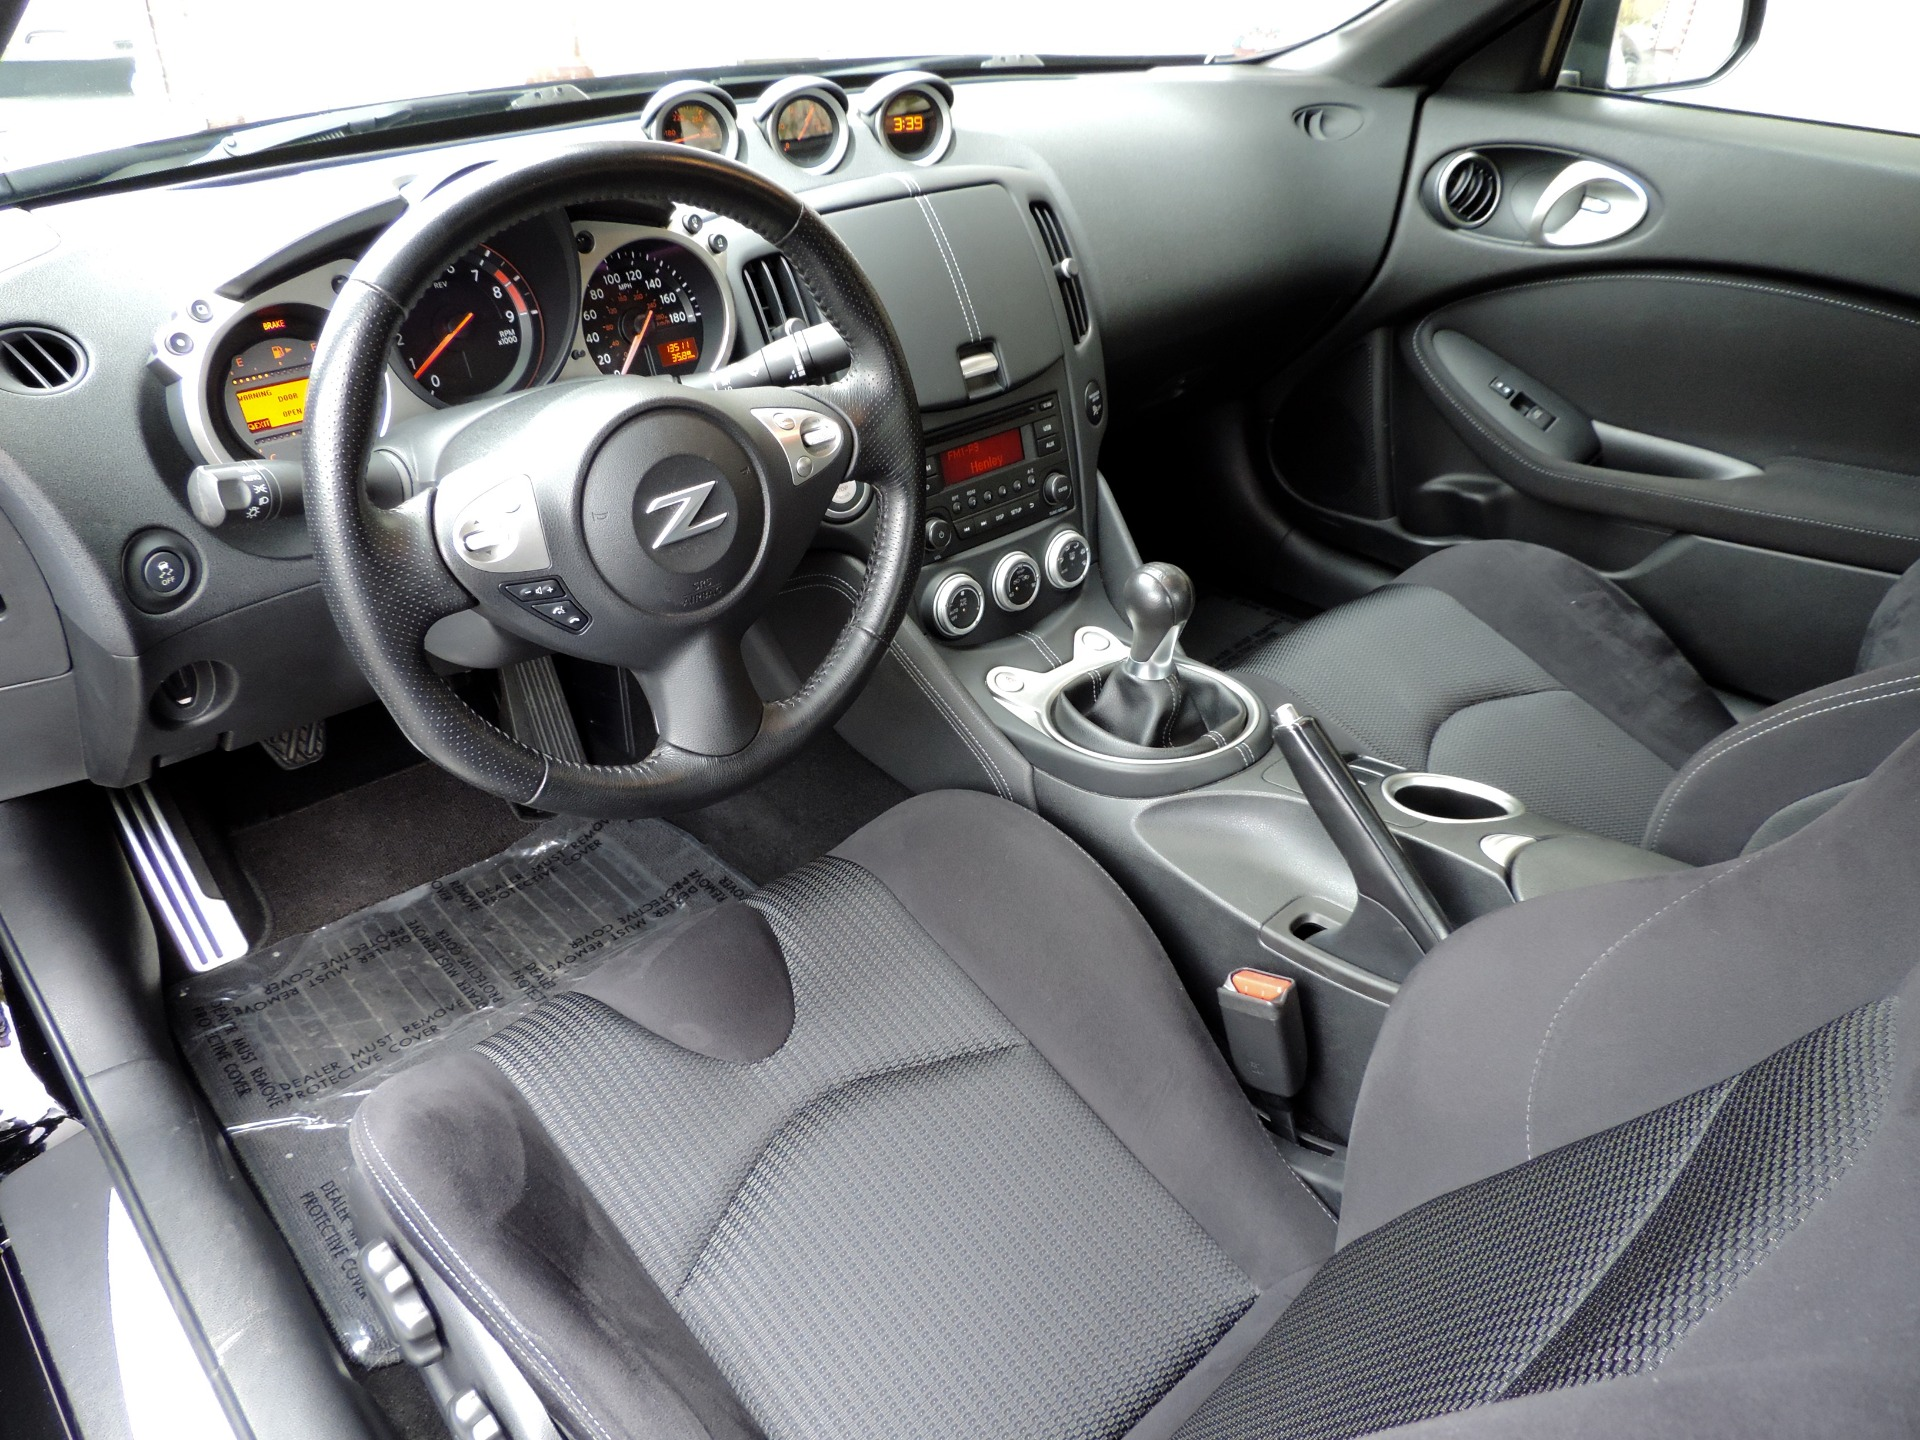 2017 nissan 370z sport stock 951277 for sale near edgewater park nj nj nissan dealer edgewater park nj nj nissan dealer